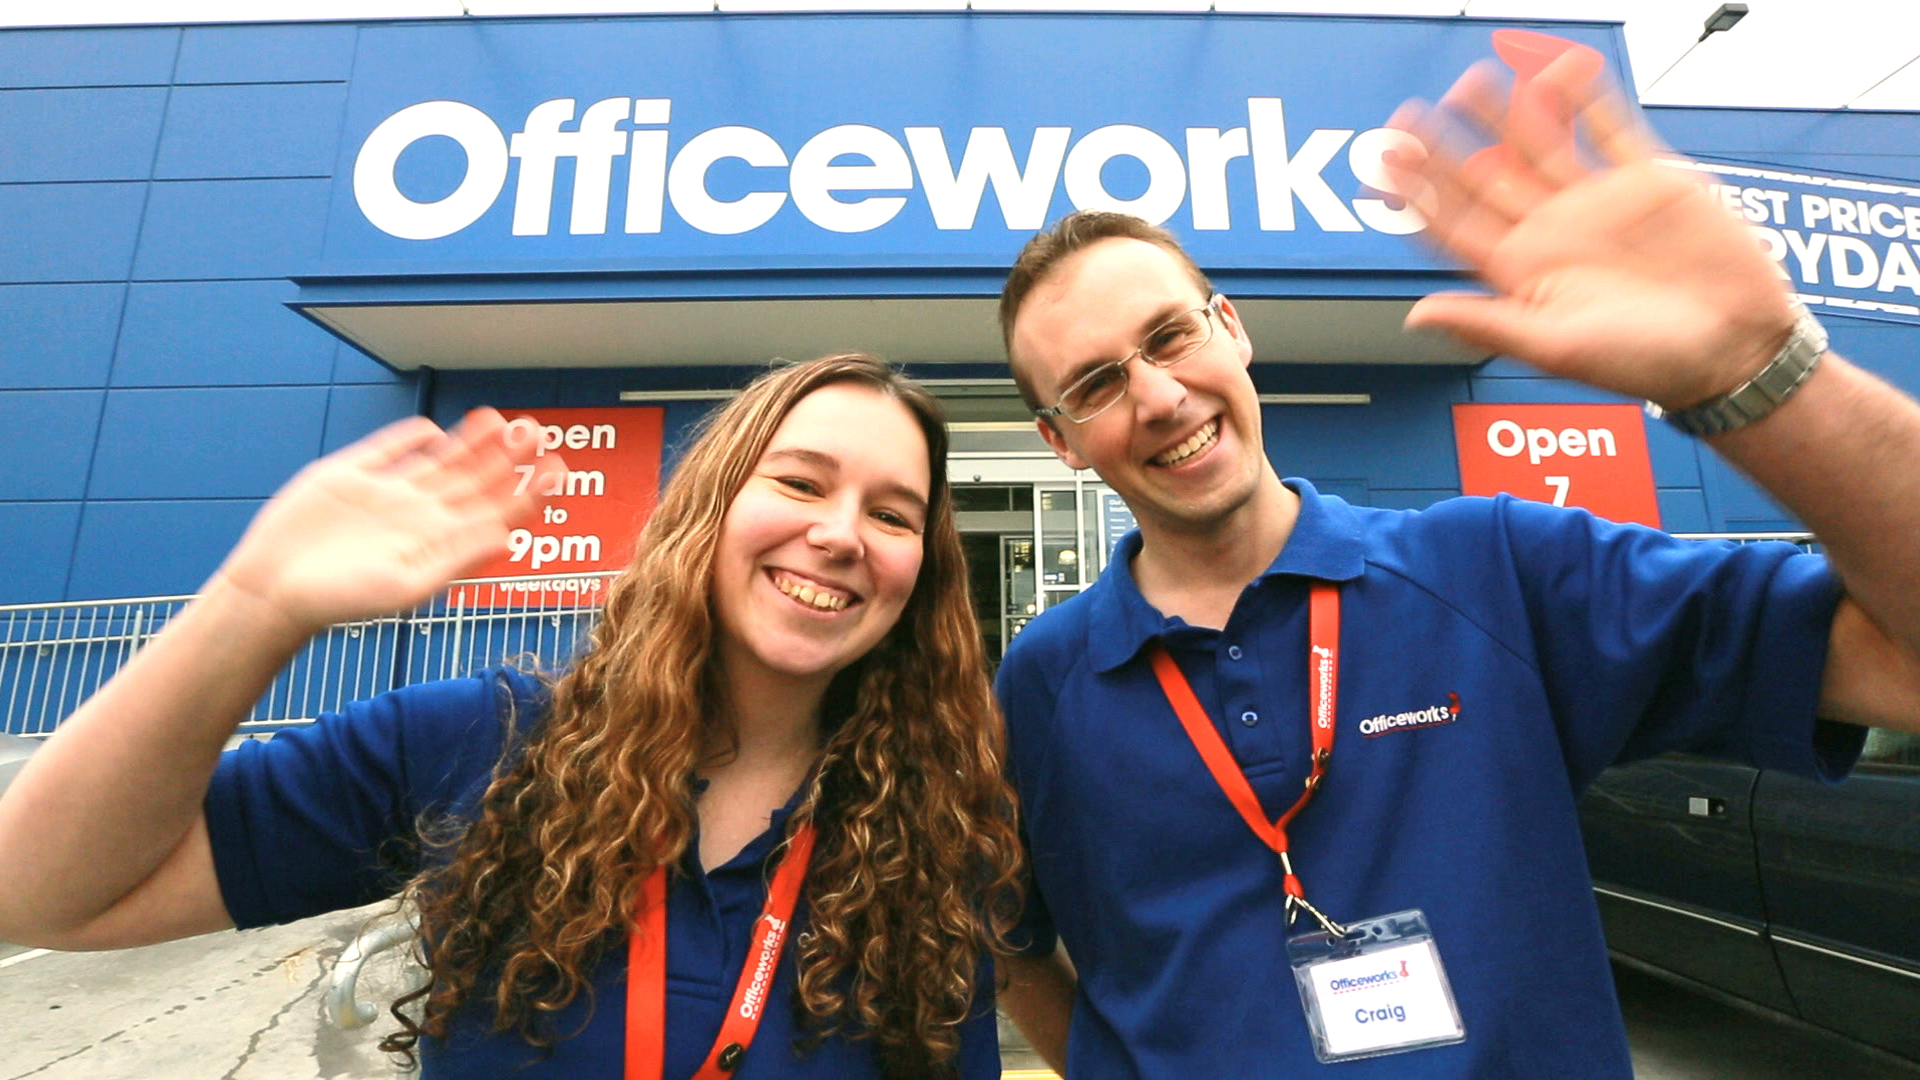 Officeworks - Community Involvement-1